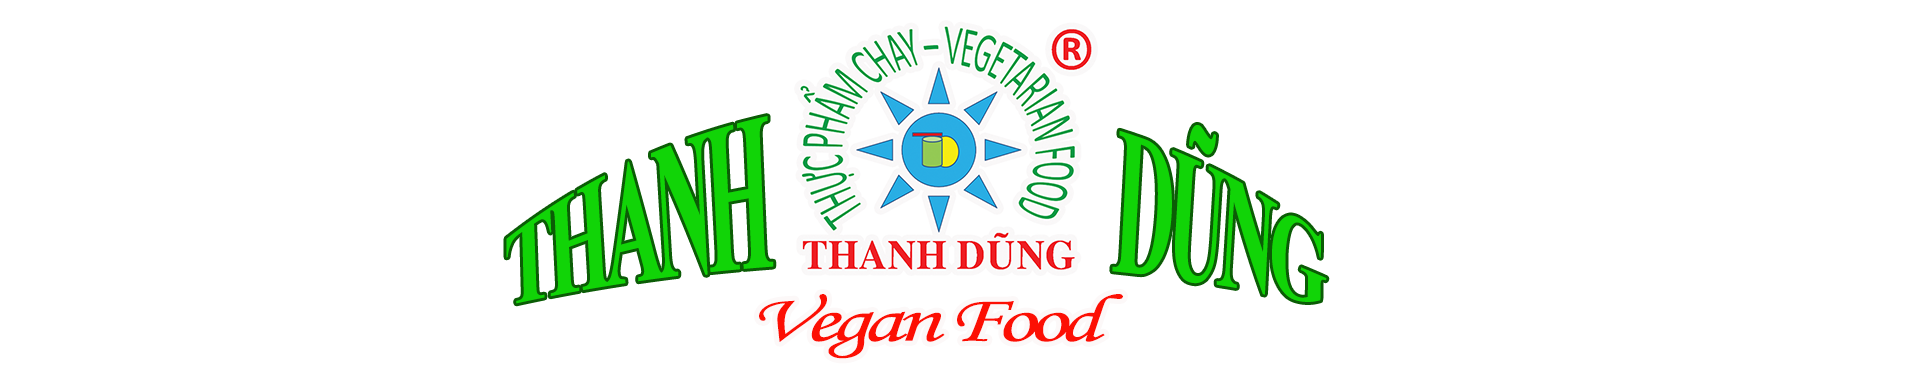 http://thucphamchaythanhdung.com